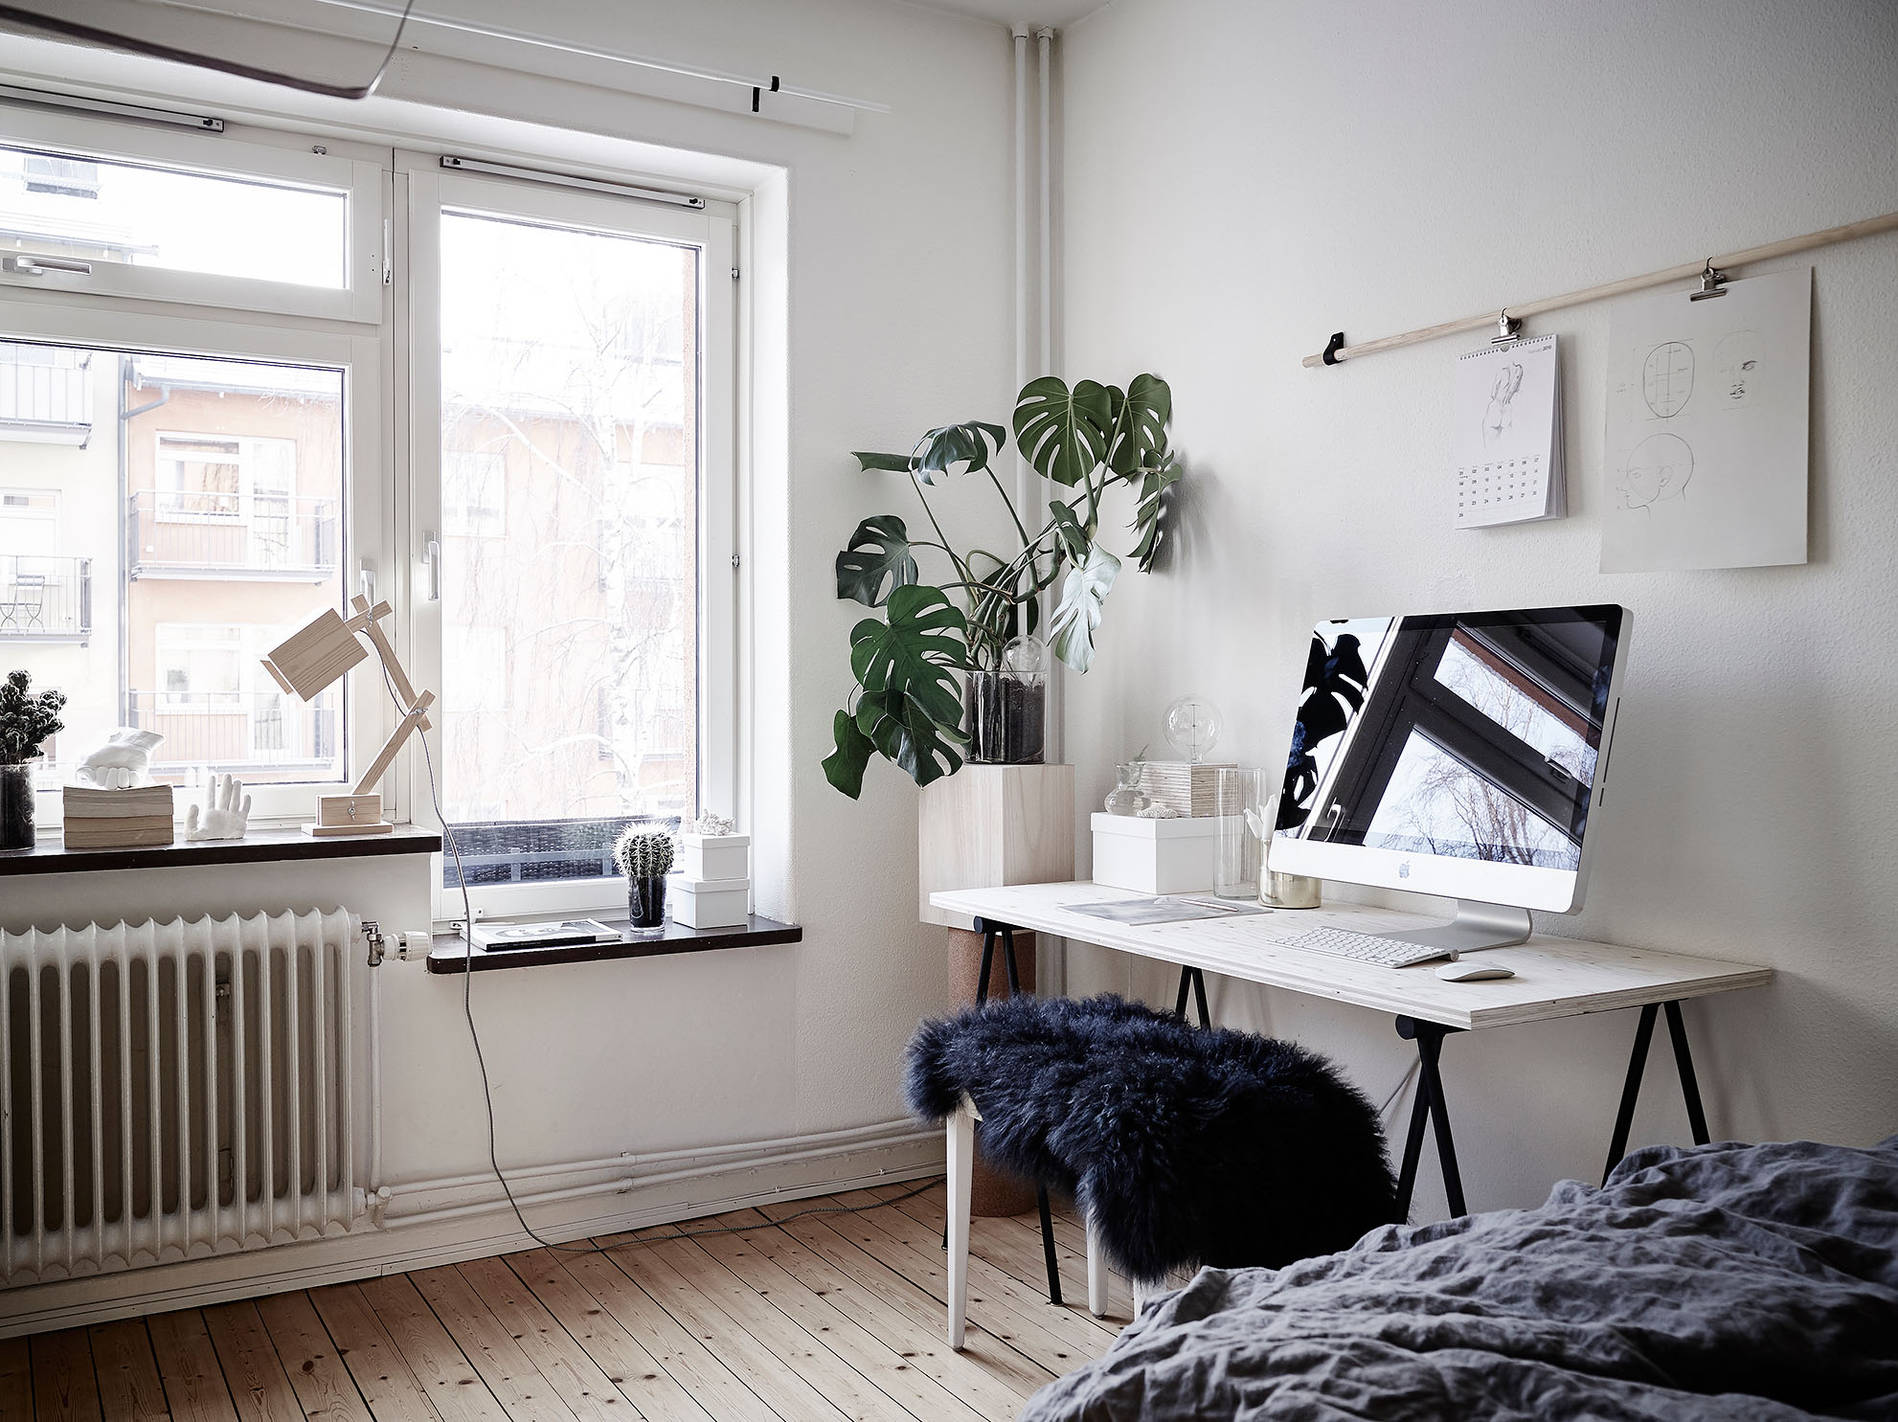 Astounding Bedroom Living Room And Work Space In One Coco Lapine Largest Home Design Picture Inspirations Pitcheantrous